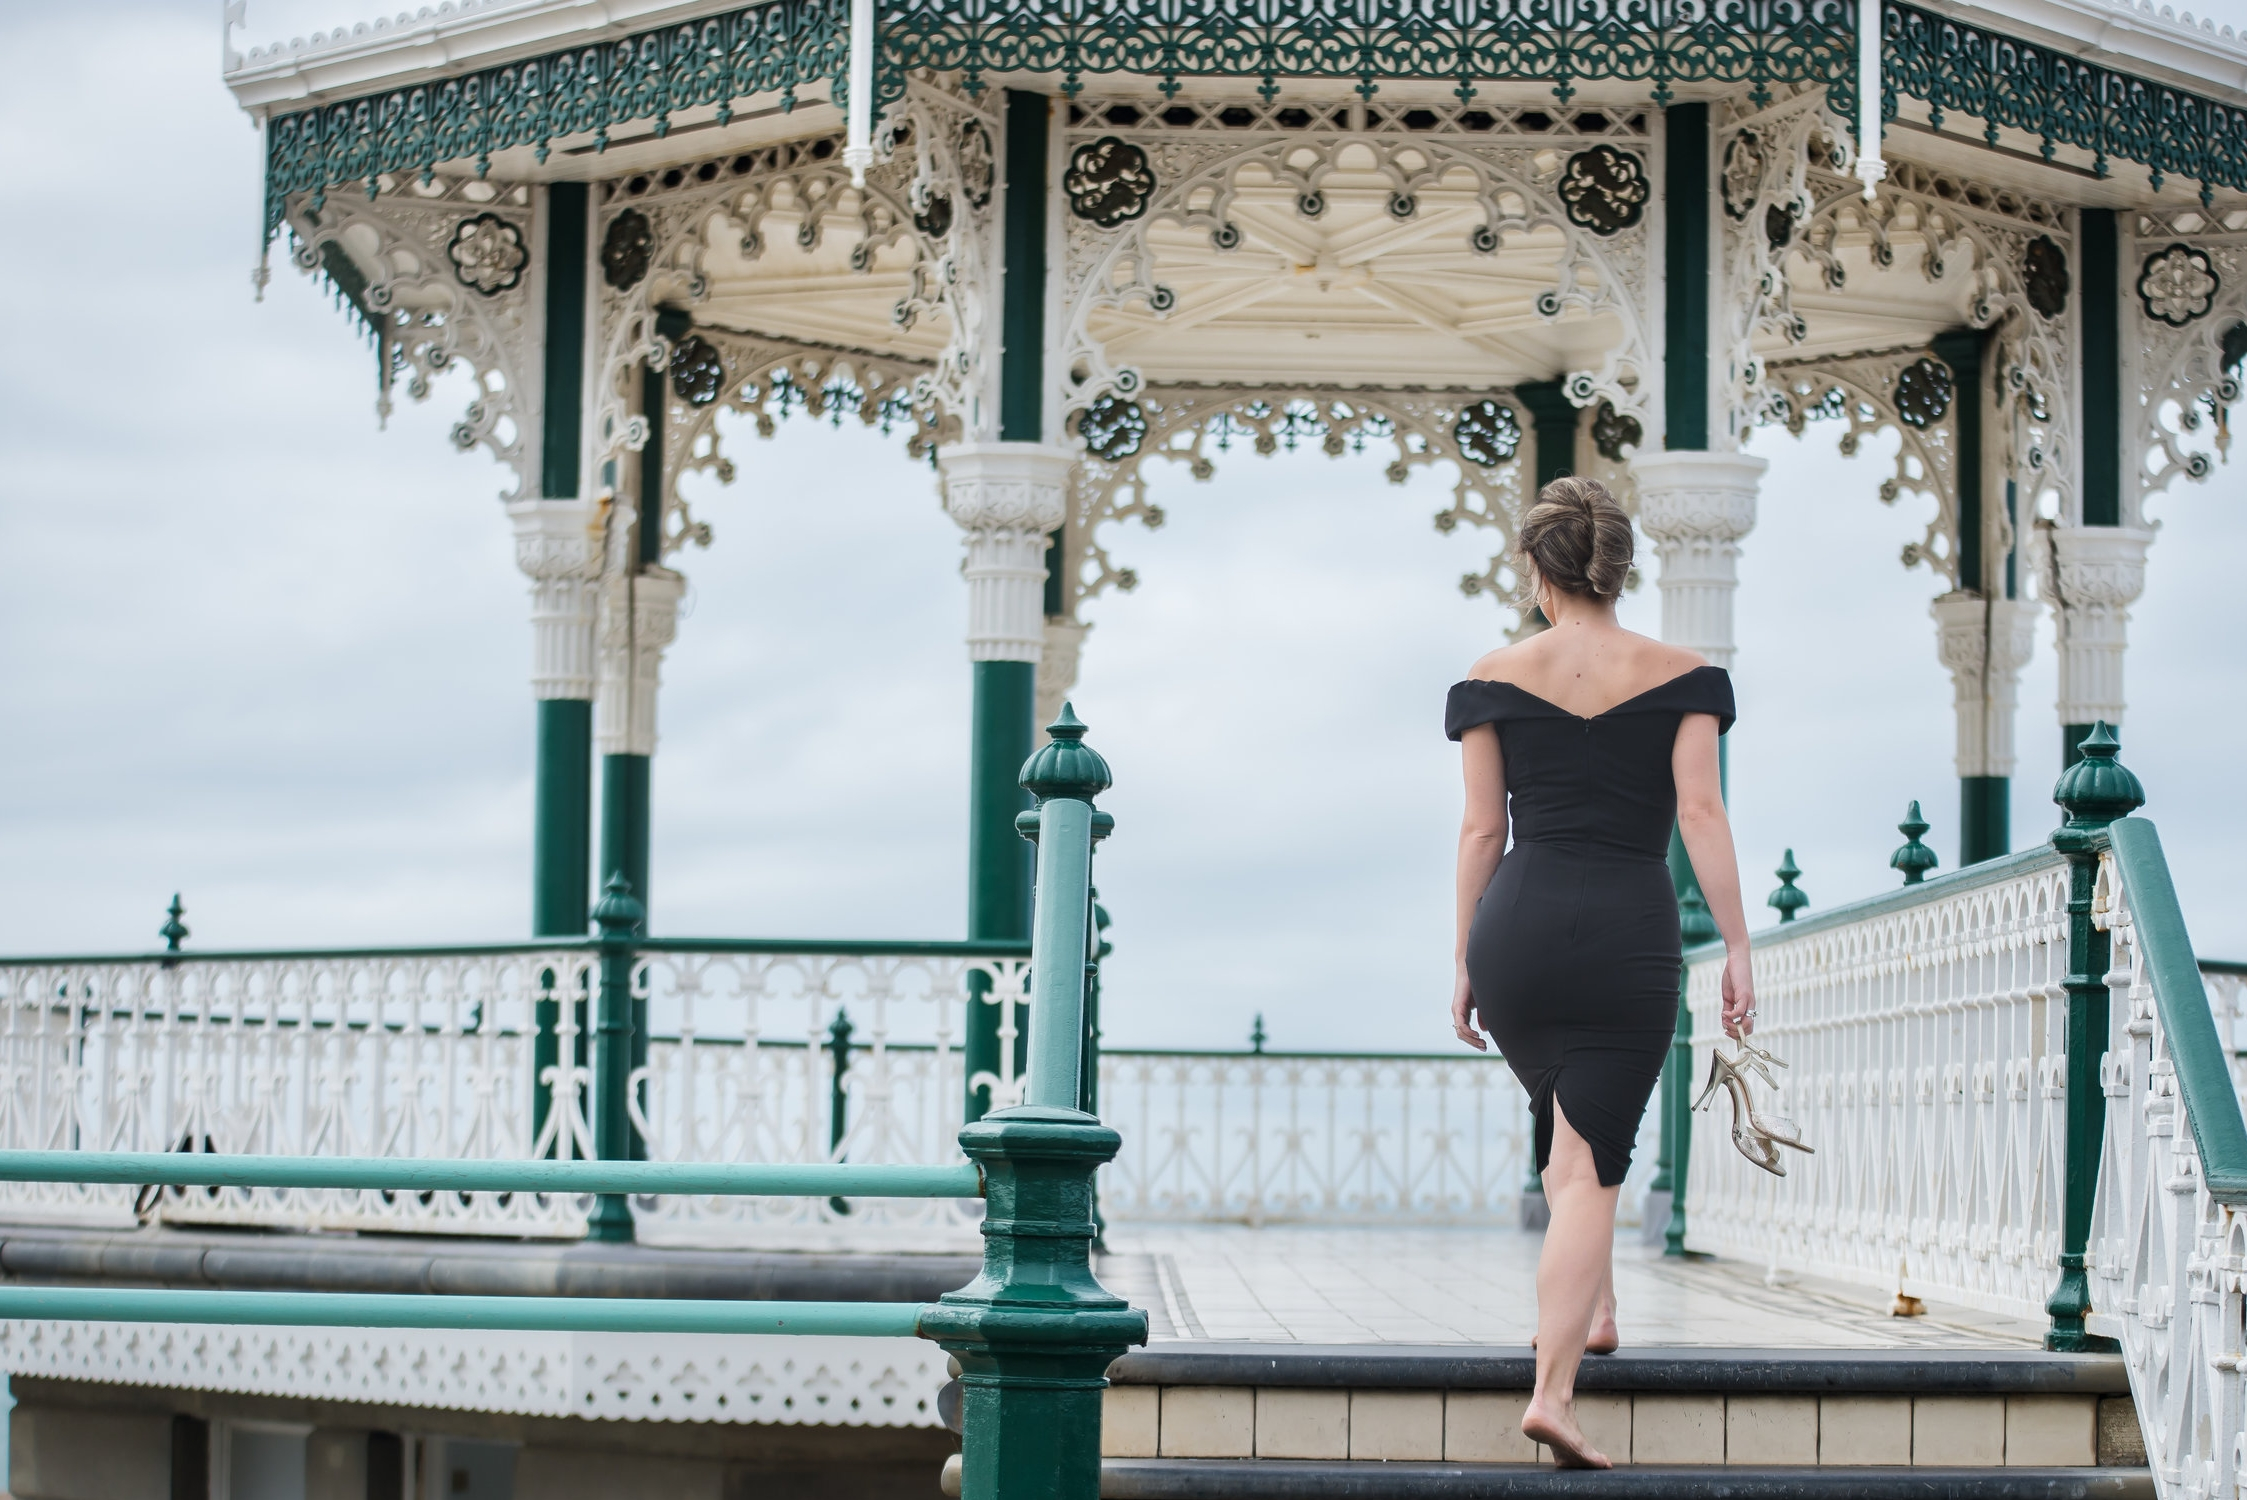 Stefania in the bandstand